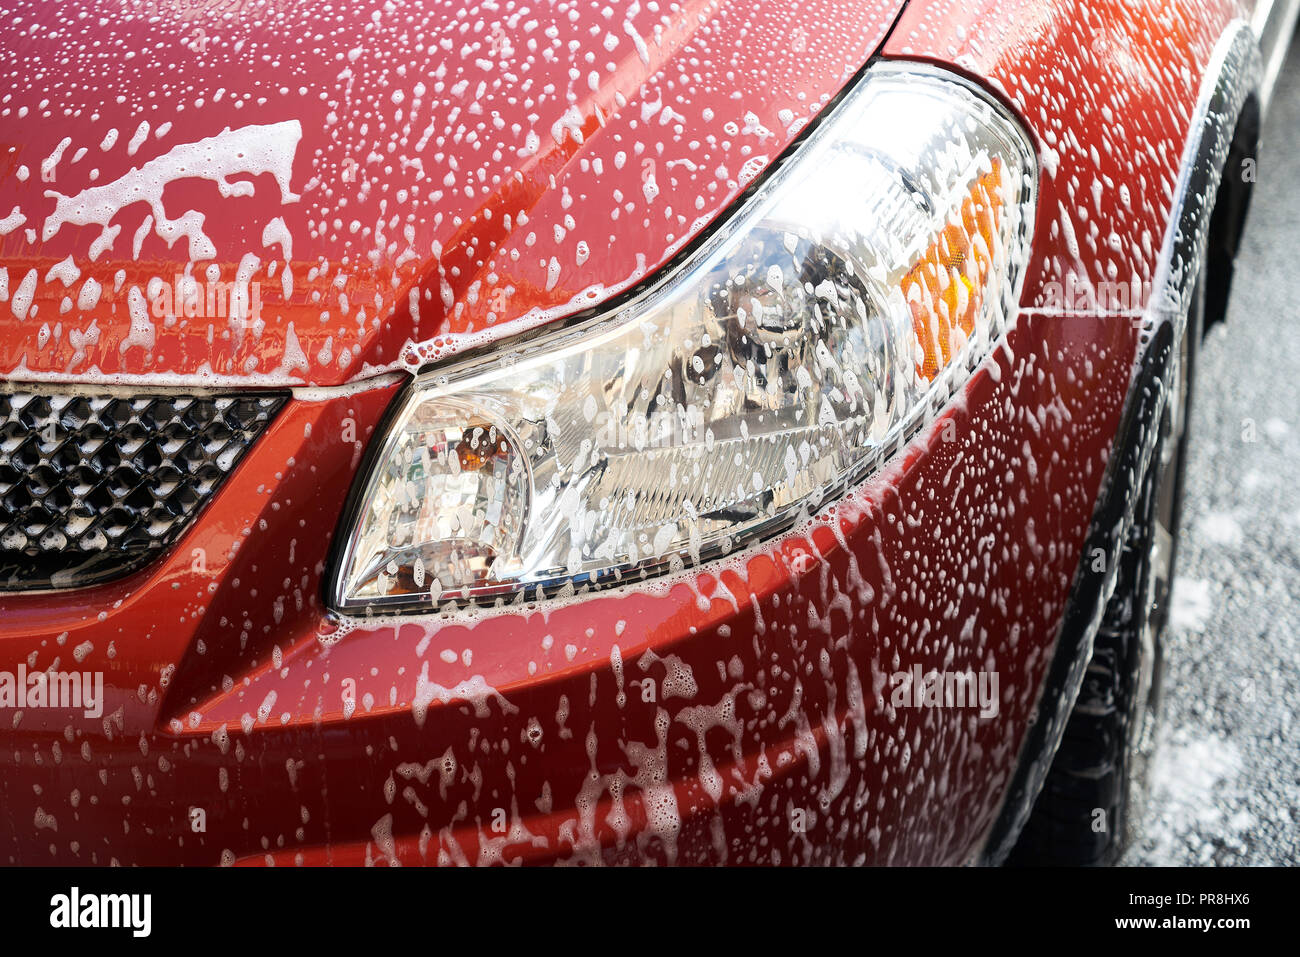 Montreal,Canada 29,September,2018.Soap suds on an automobile. Credit:Mario Beauregard/Alamy Live News - Stock Image